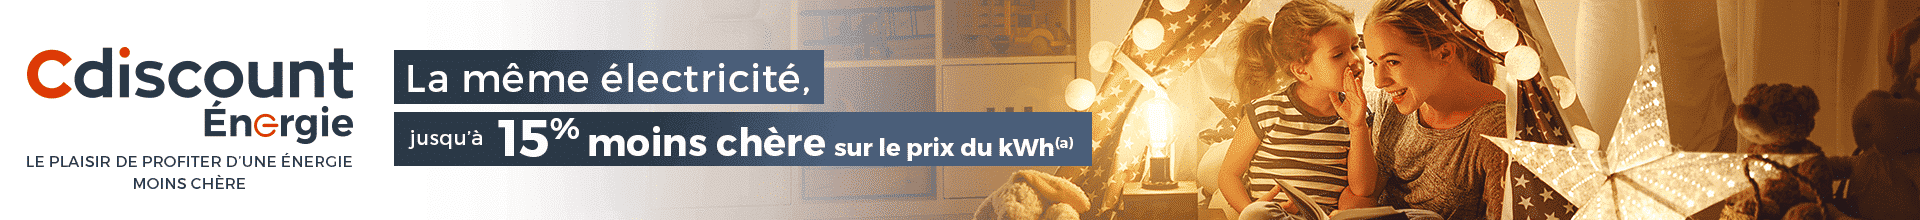 cdiscount energie electricite moins chere 15pourcent